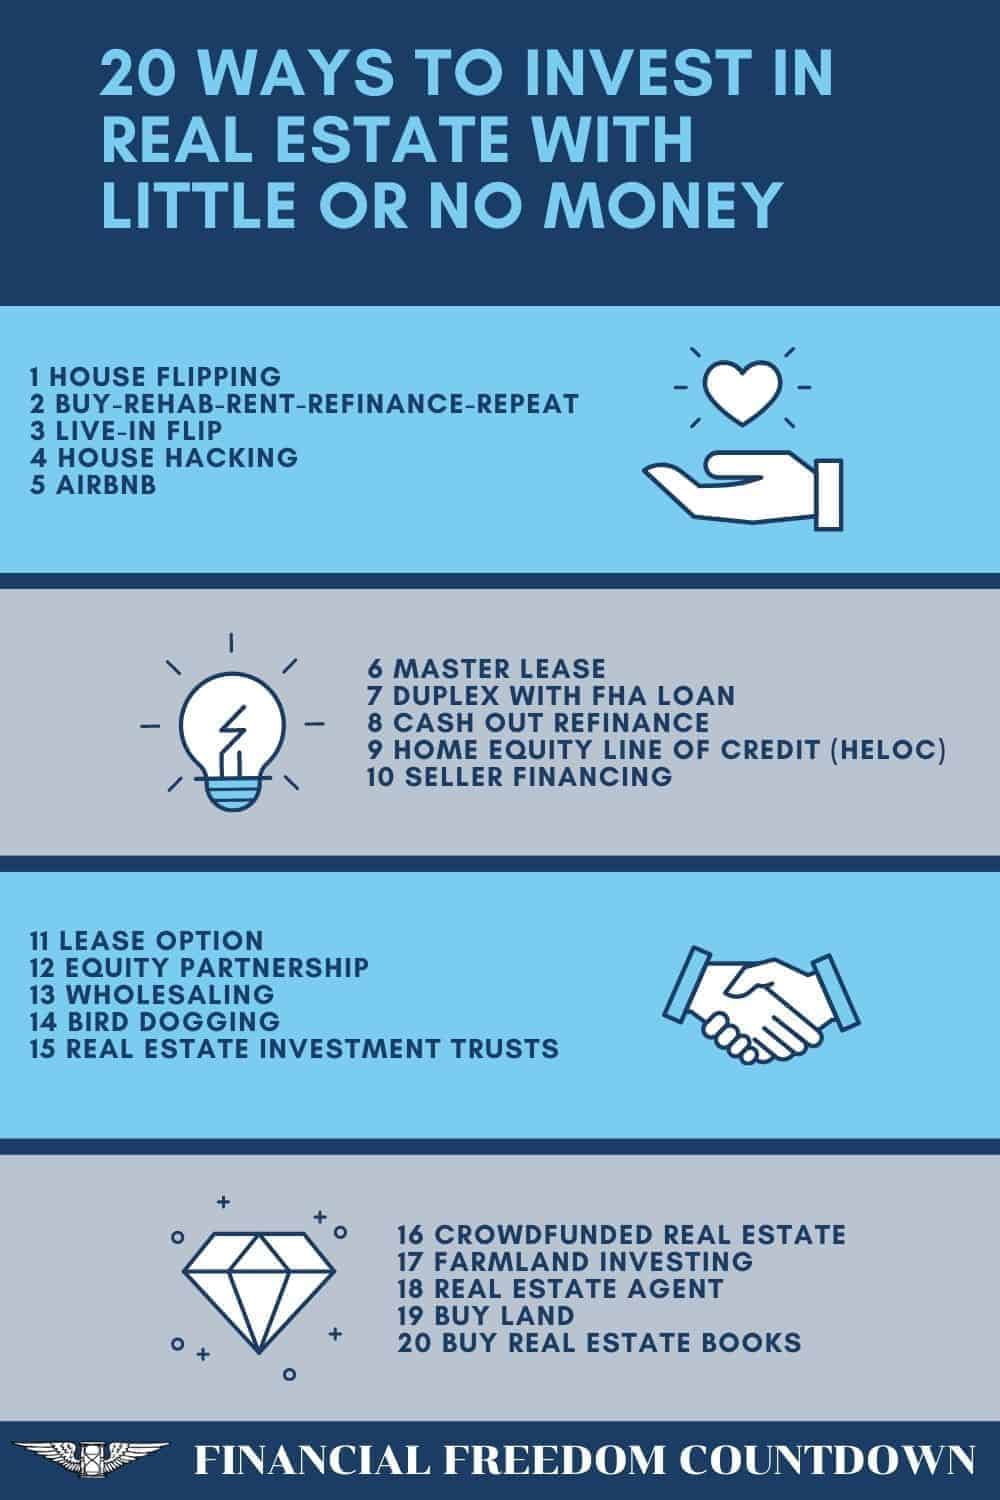 Here are 20 ways to invest in real estate with little or no money. The pros and cons depend on your local market, network, time commitment, and skills.